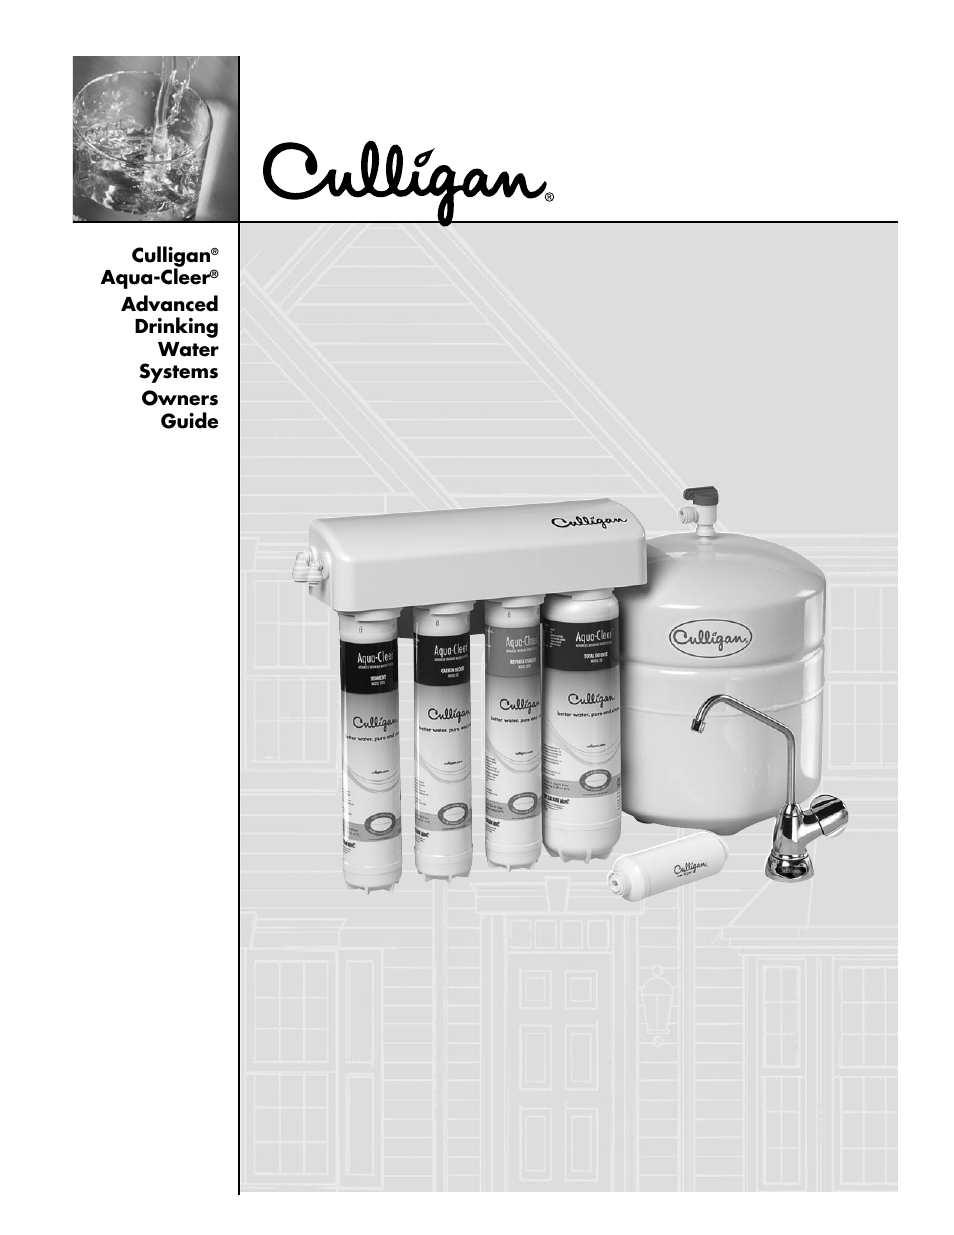 culligan aqua cleer advanced drinking water systems user manual 59 rh manualsdir com Culligan Aqua-Cleer Owner's Manual Culligan Drinking Water System Review